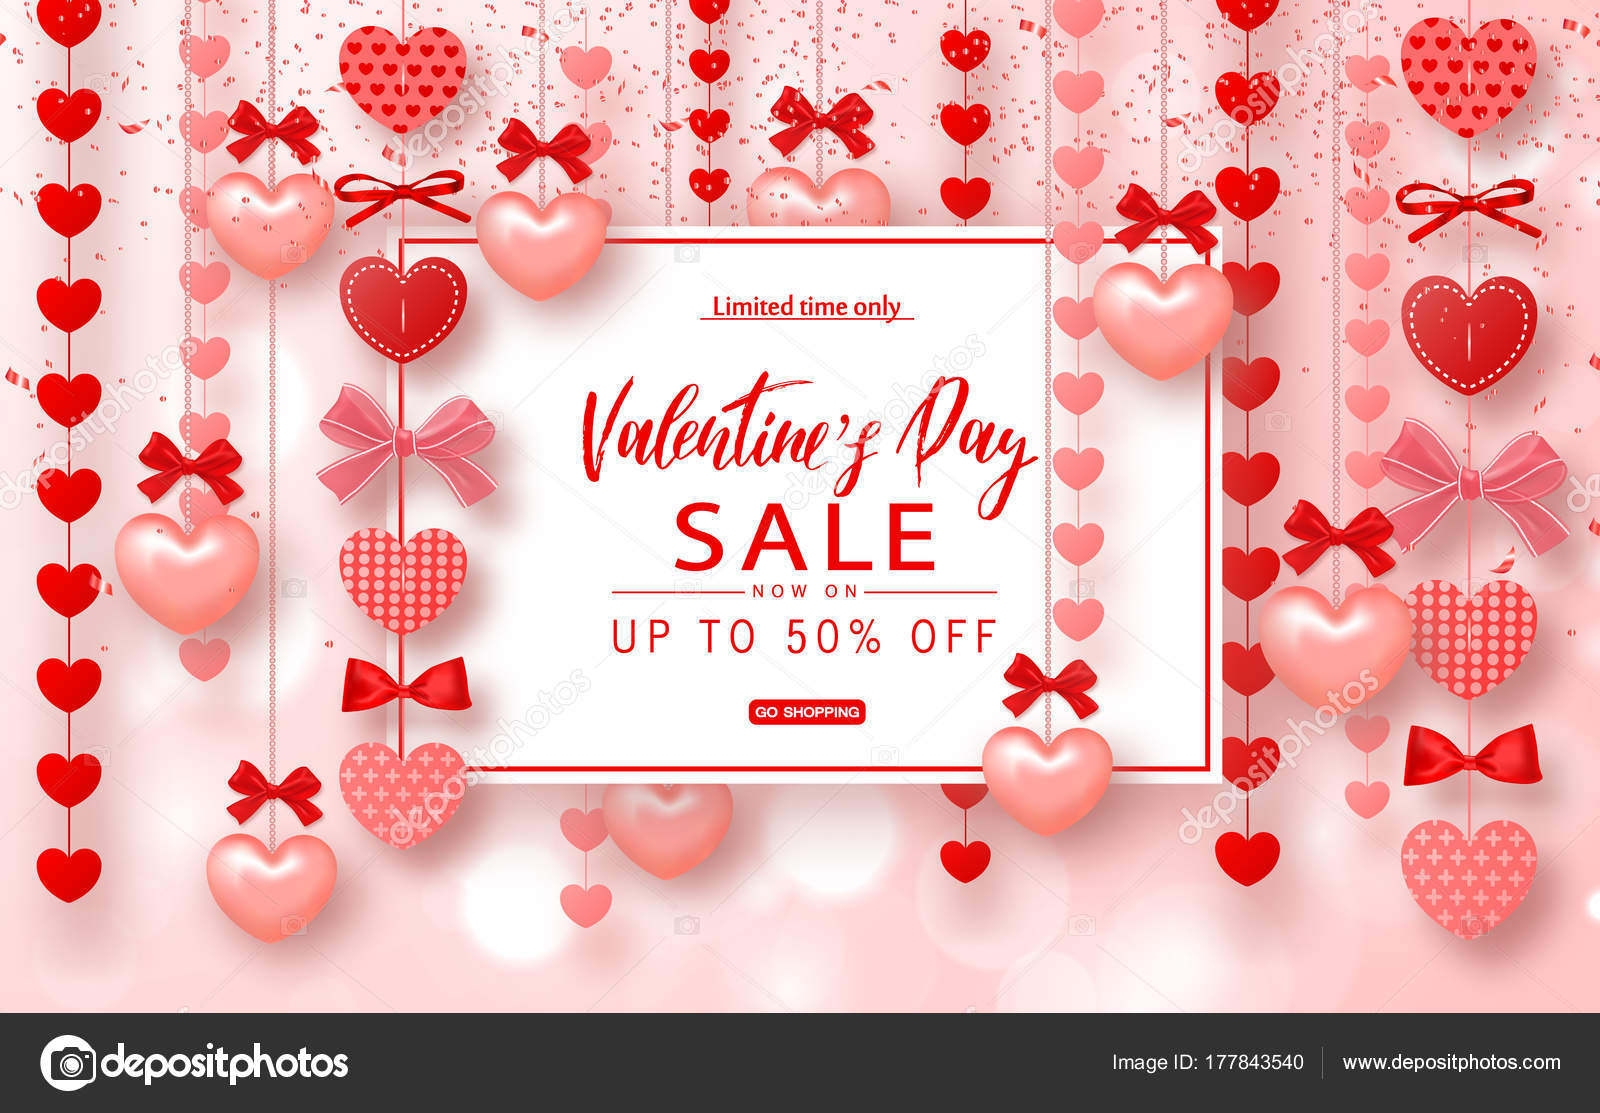 valentines day sale banner. beautiful background with hearts, Ideas